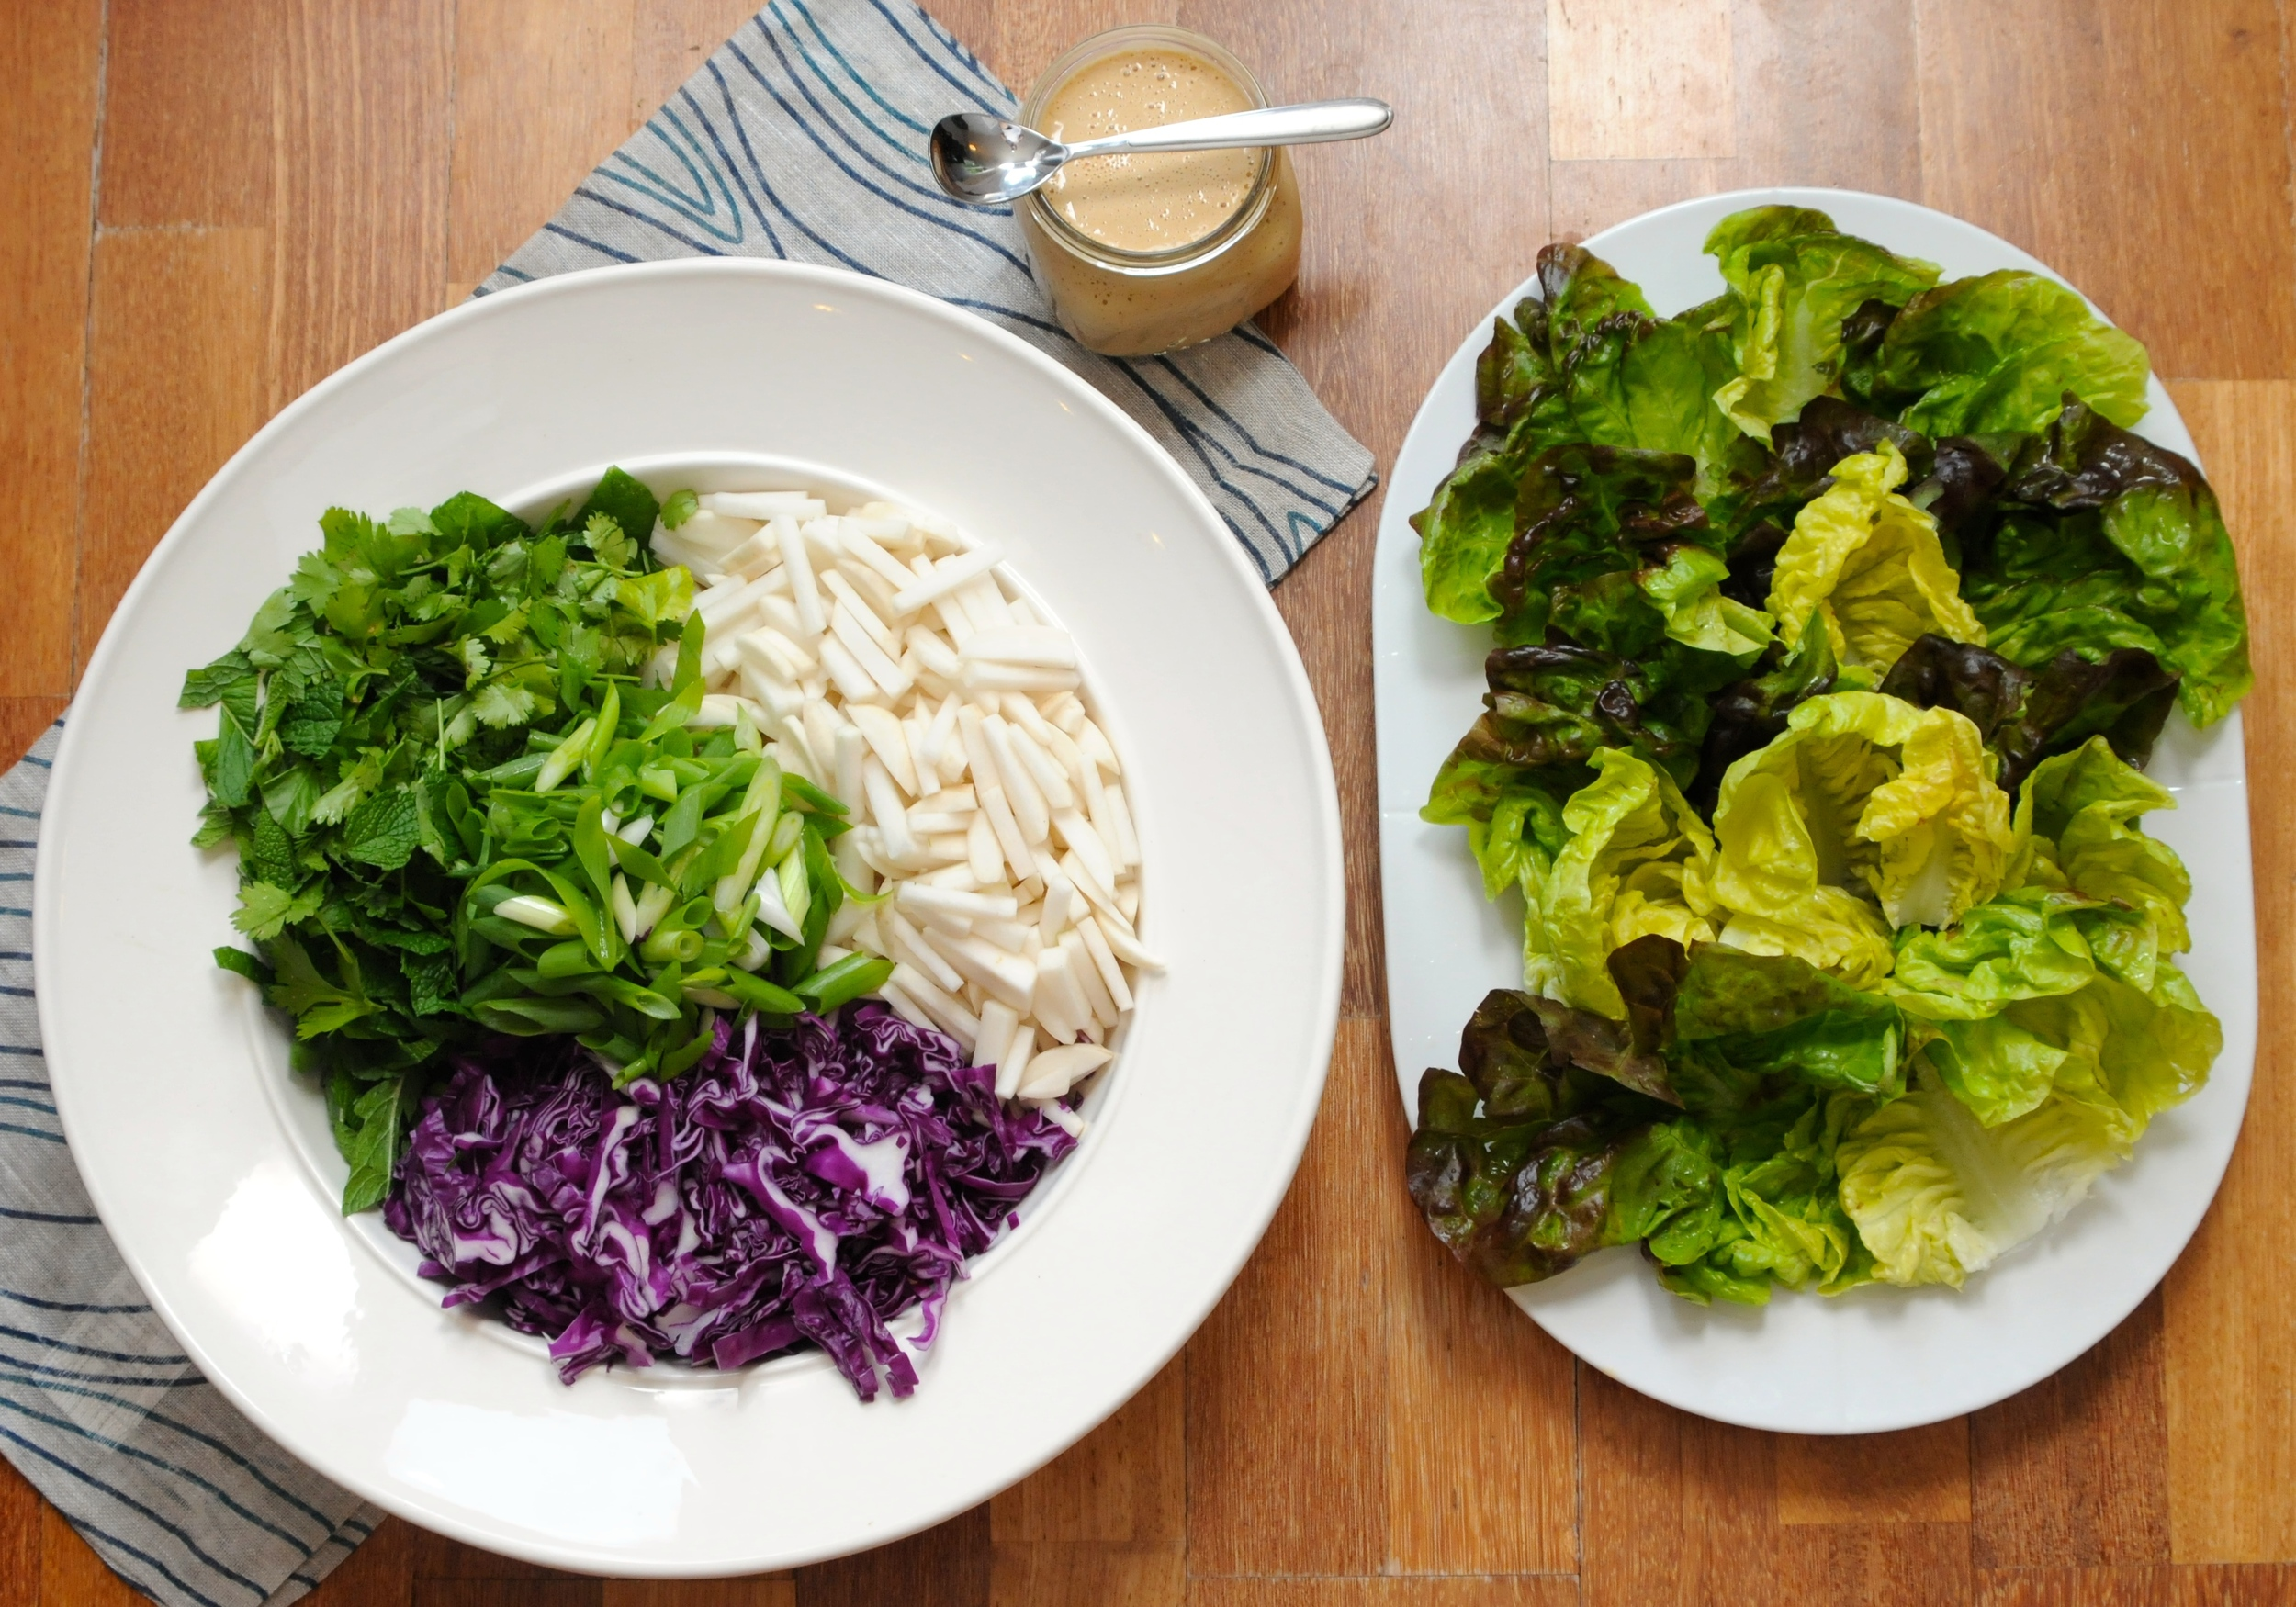 Turnip and Herb Salad Lettuce Wraps with Peanut Coconut Satay Drizzle Sauce